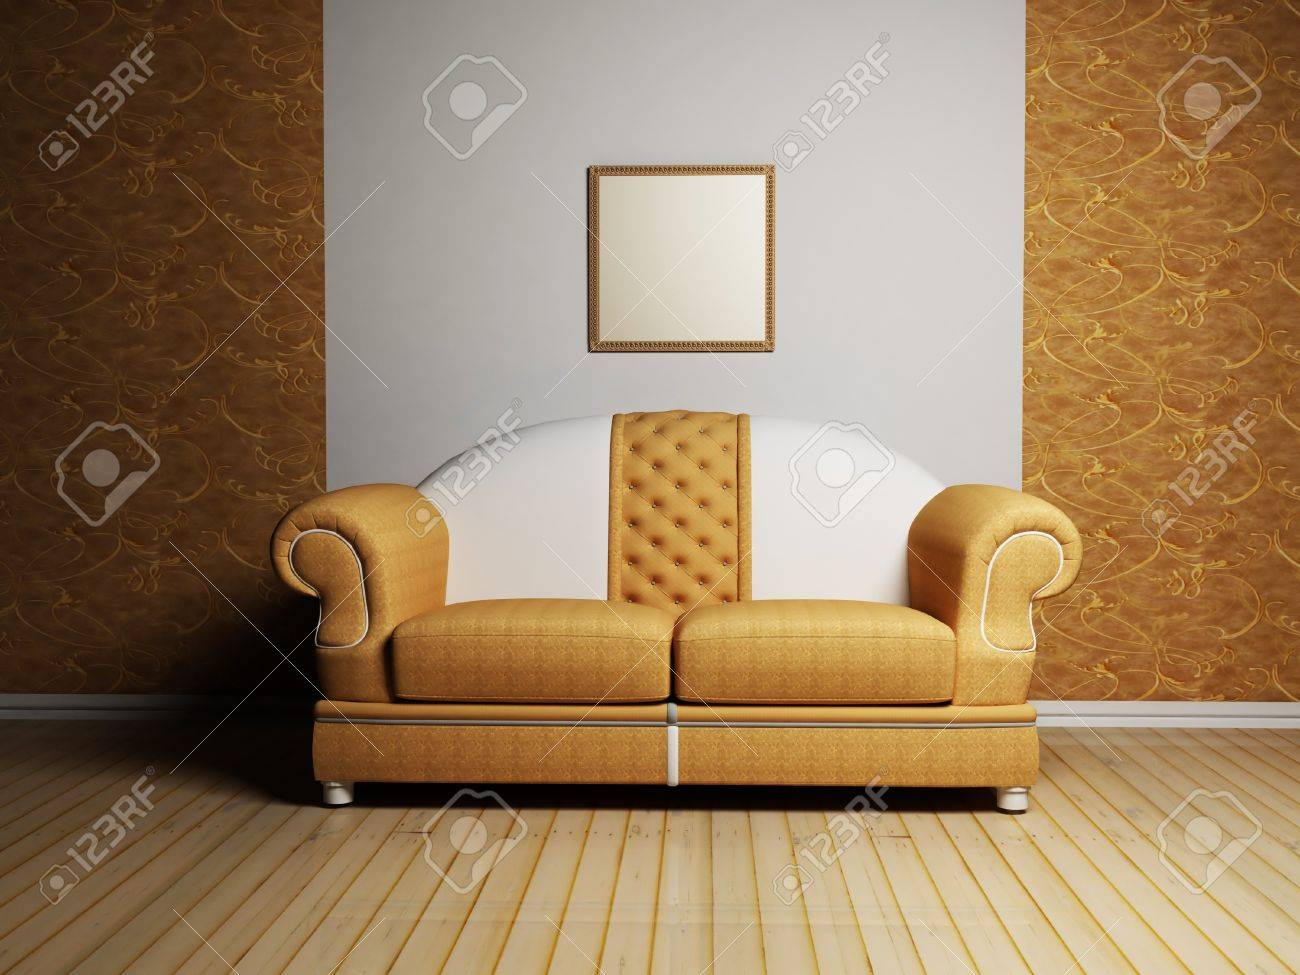 modern interior design with a nice sofa and a picture on the